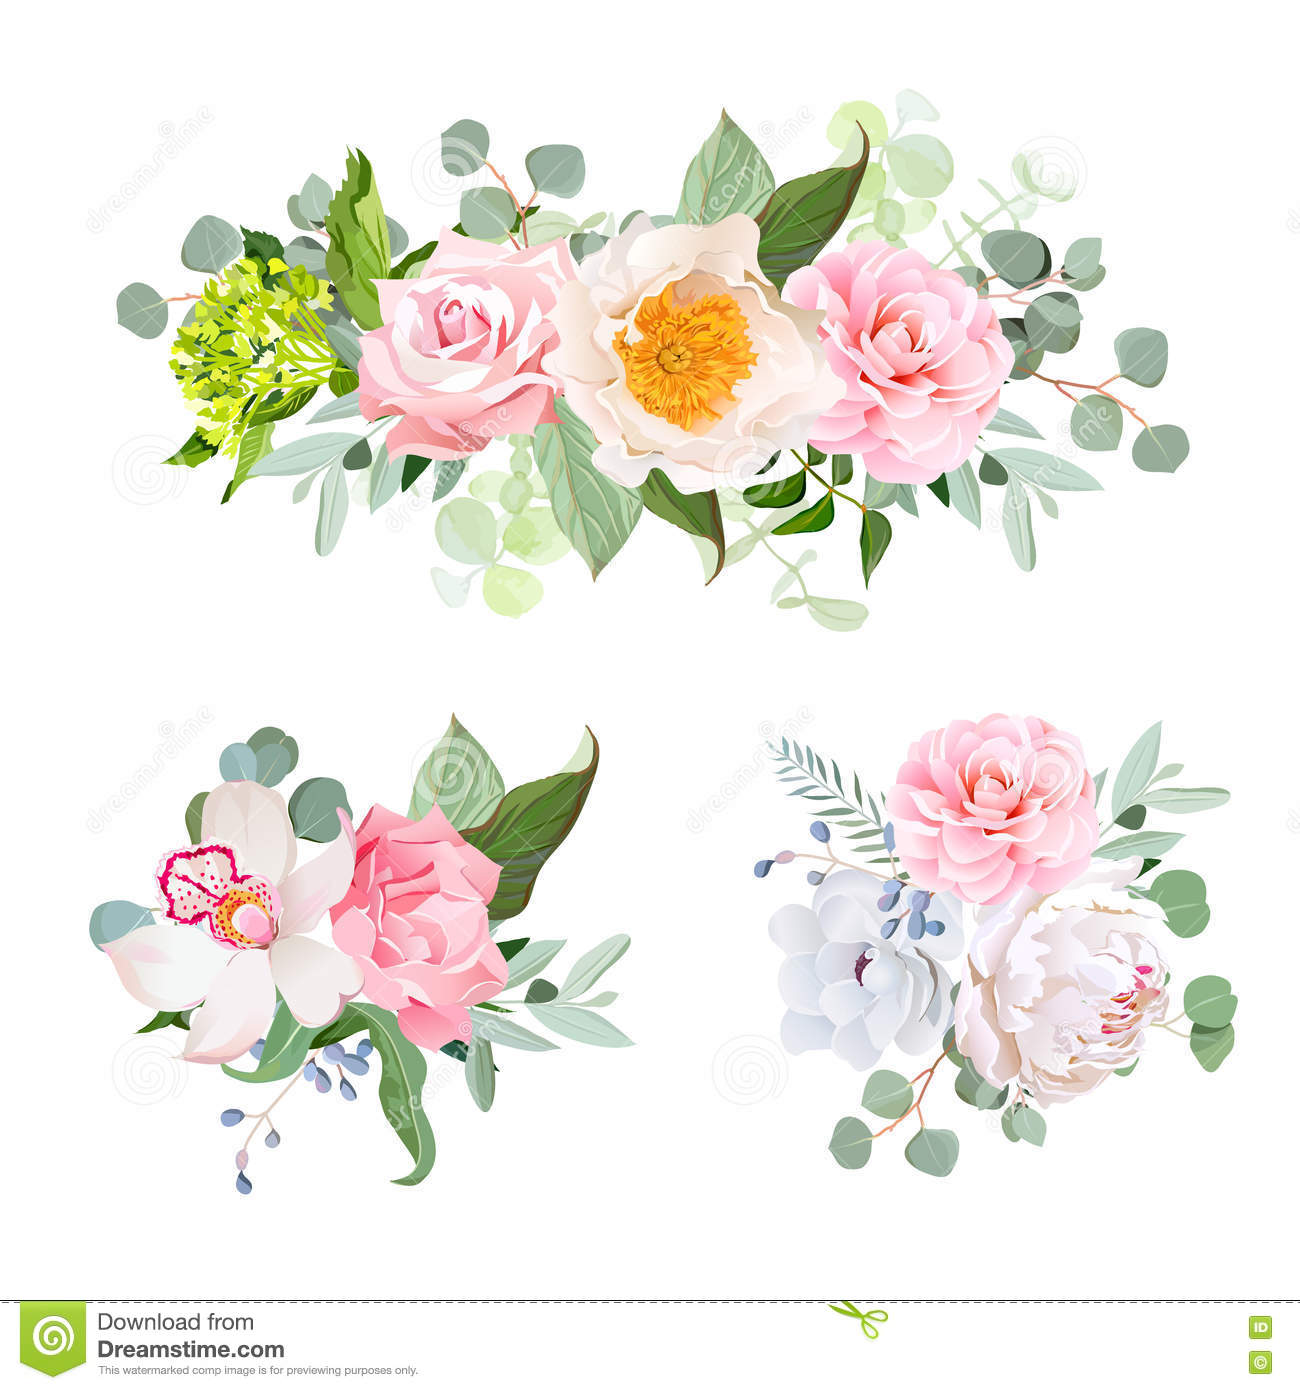 Stylish various flowers bouquets vector design set. Green